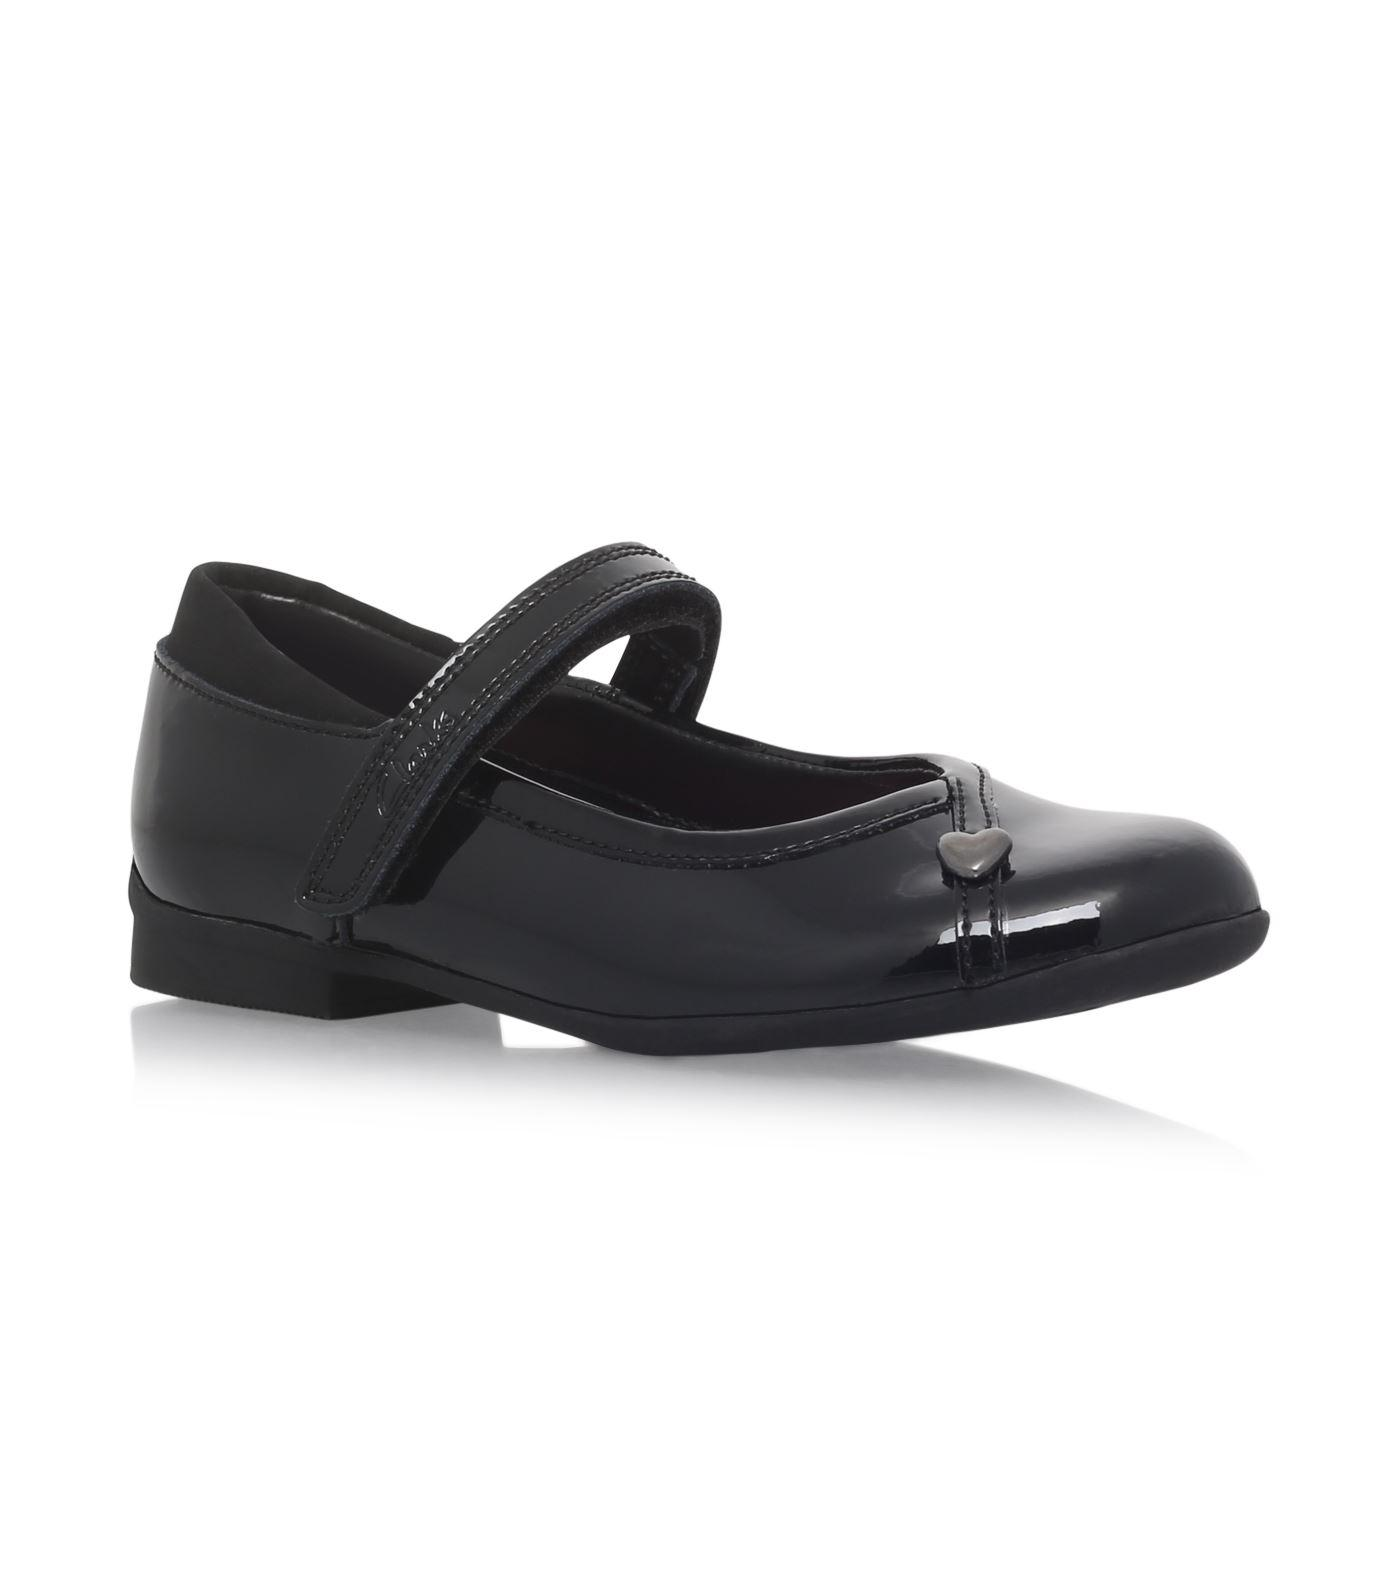 Clarks Dolly Babe Pumps In Black